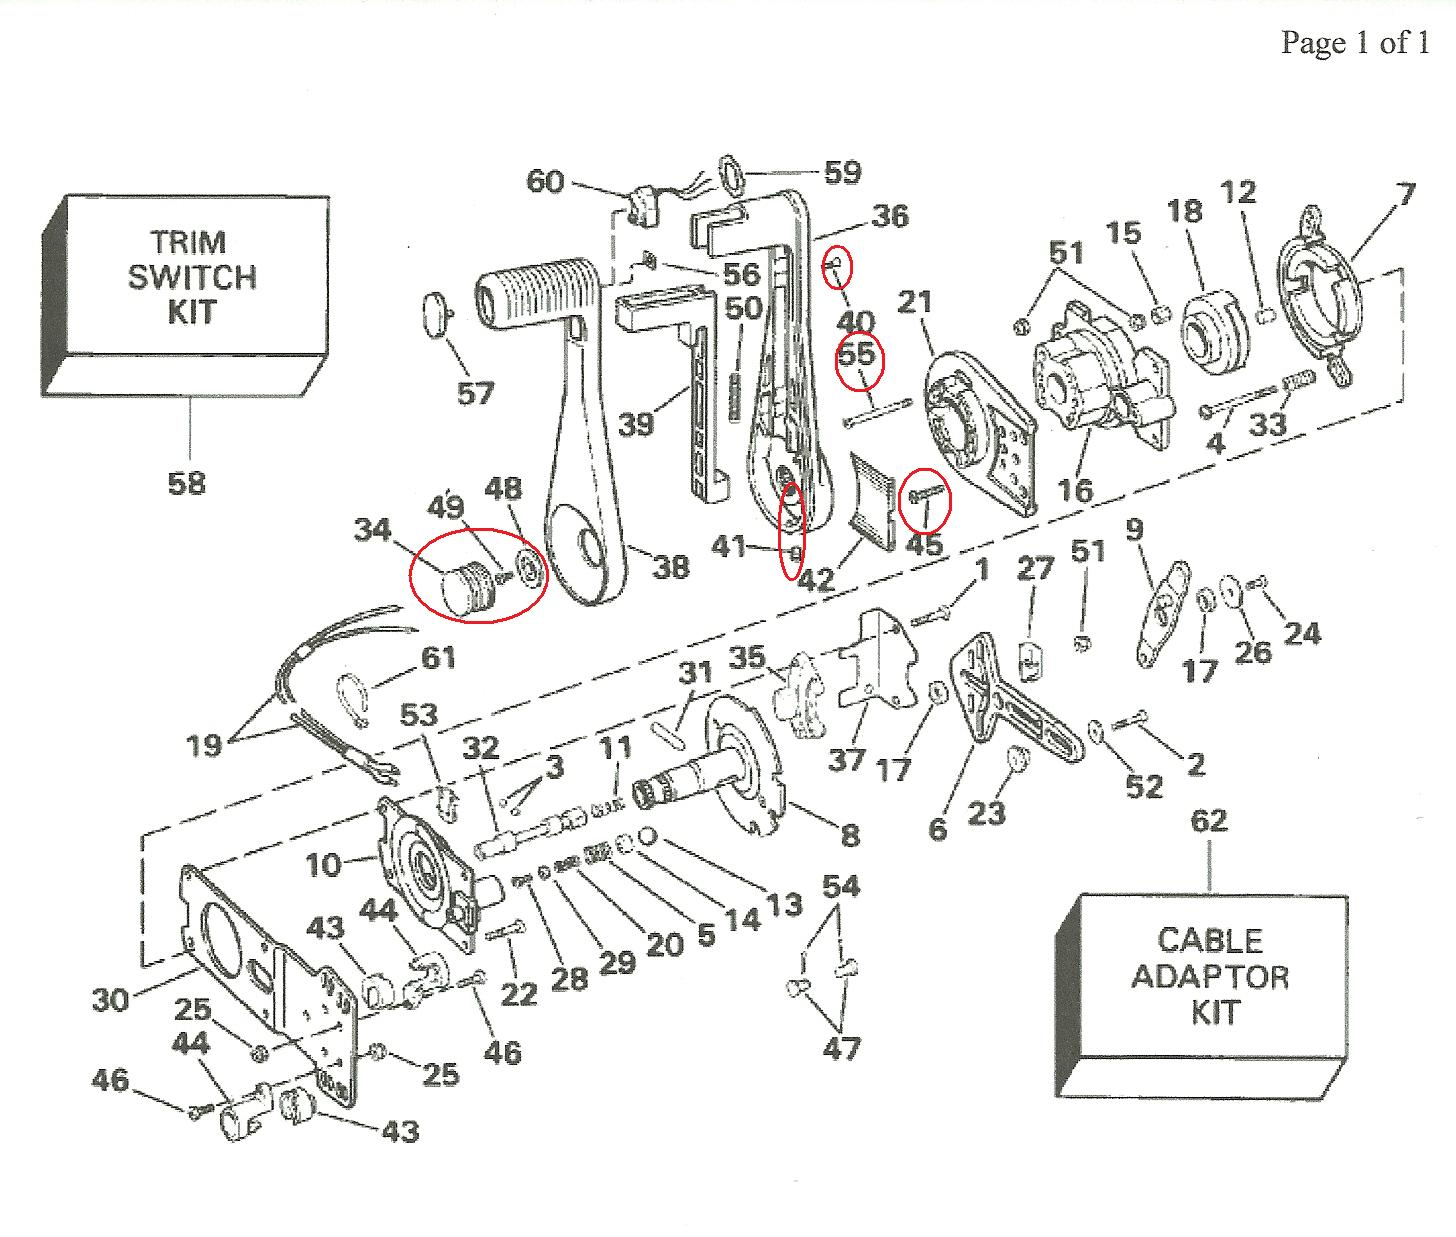 1978 Mercruiser Wiring Diagram Free For You Mercury Outboard Control Box Get Image About